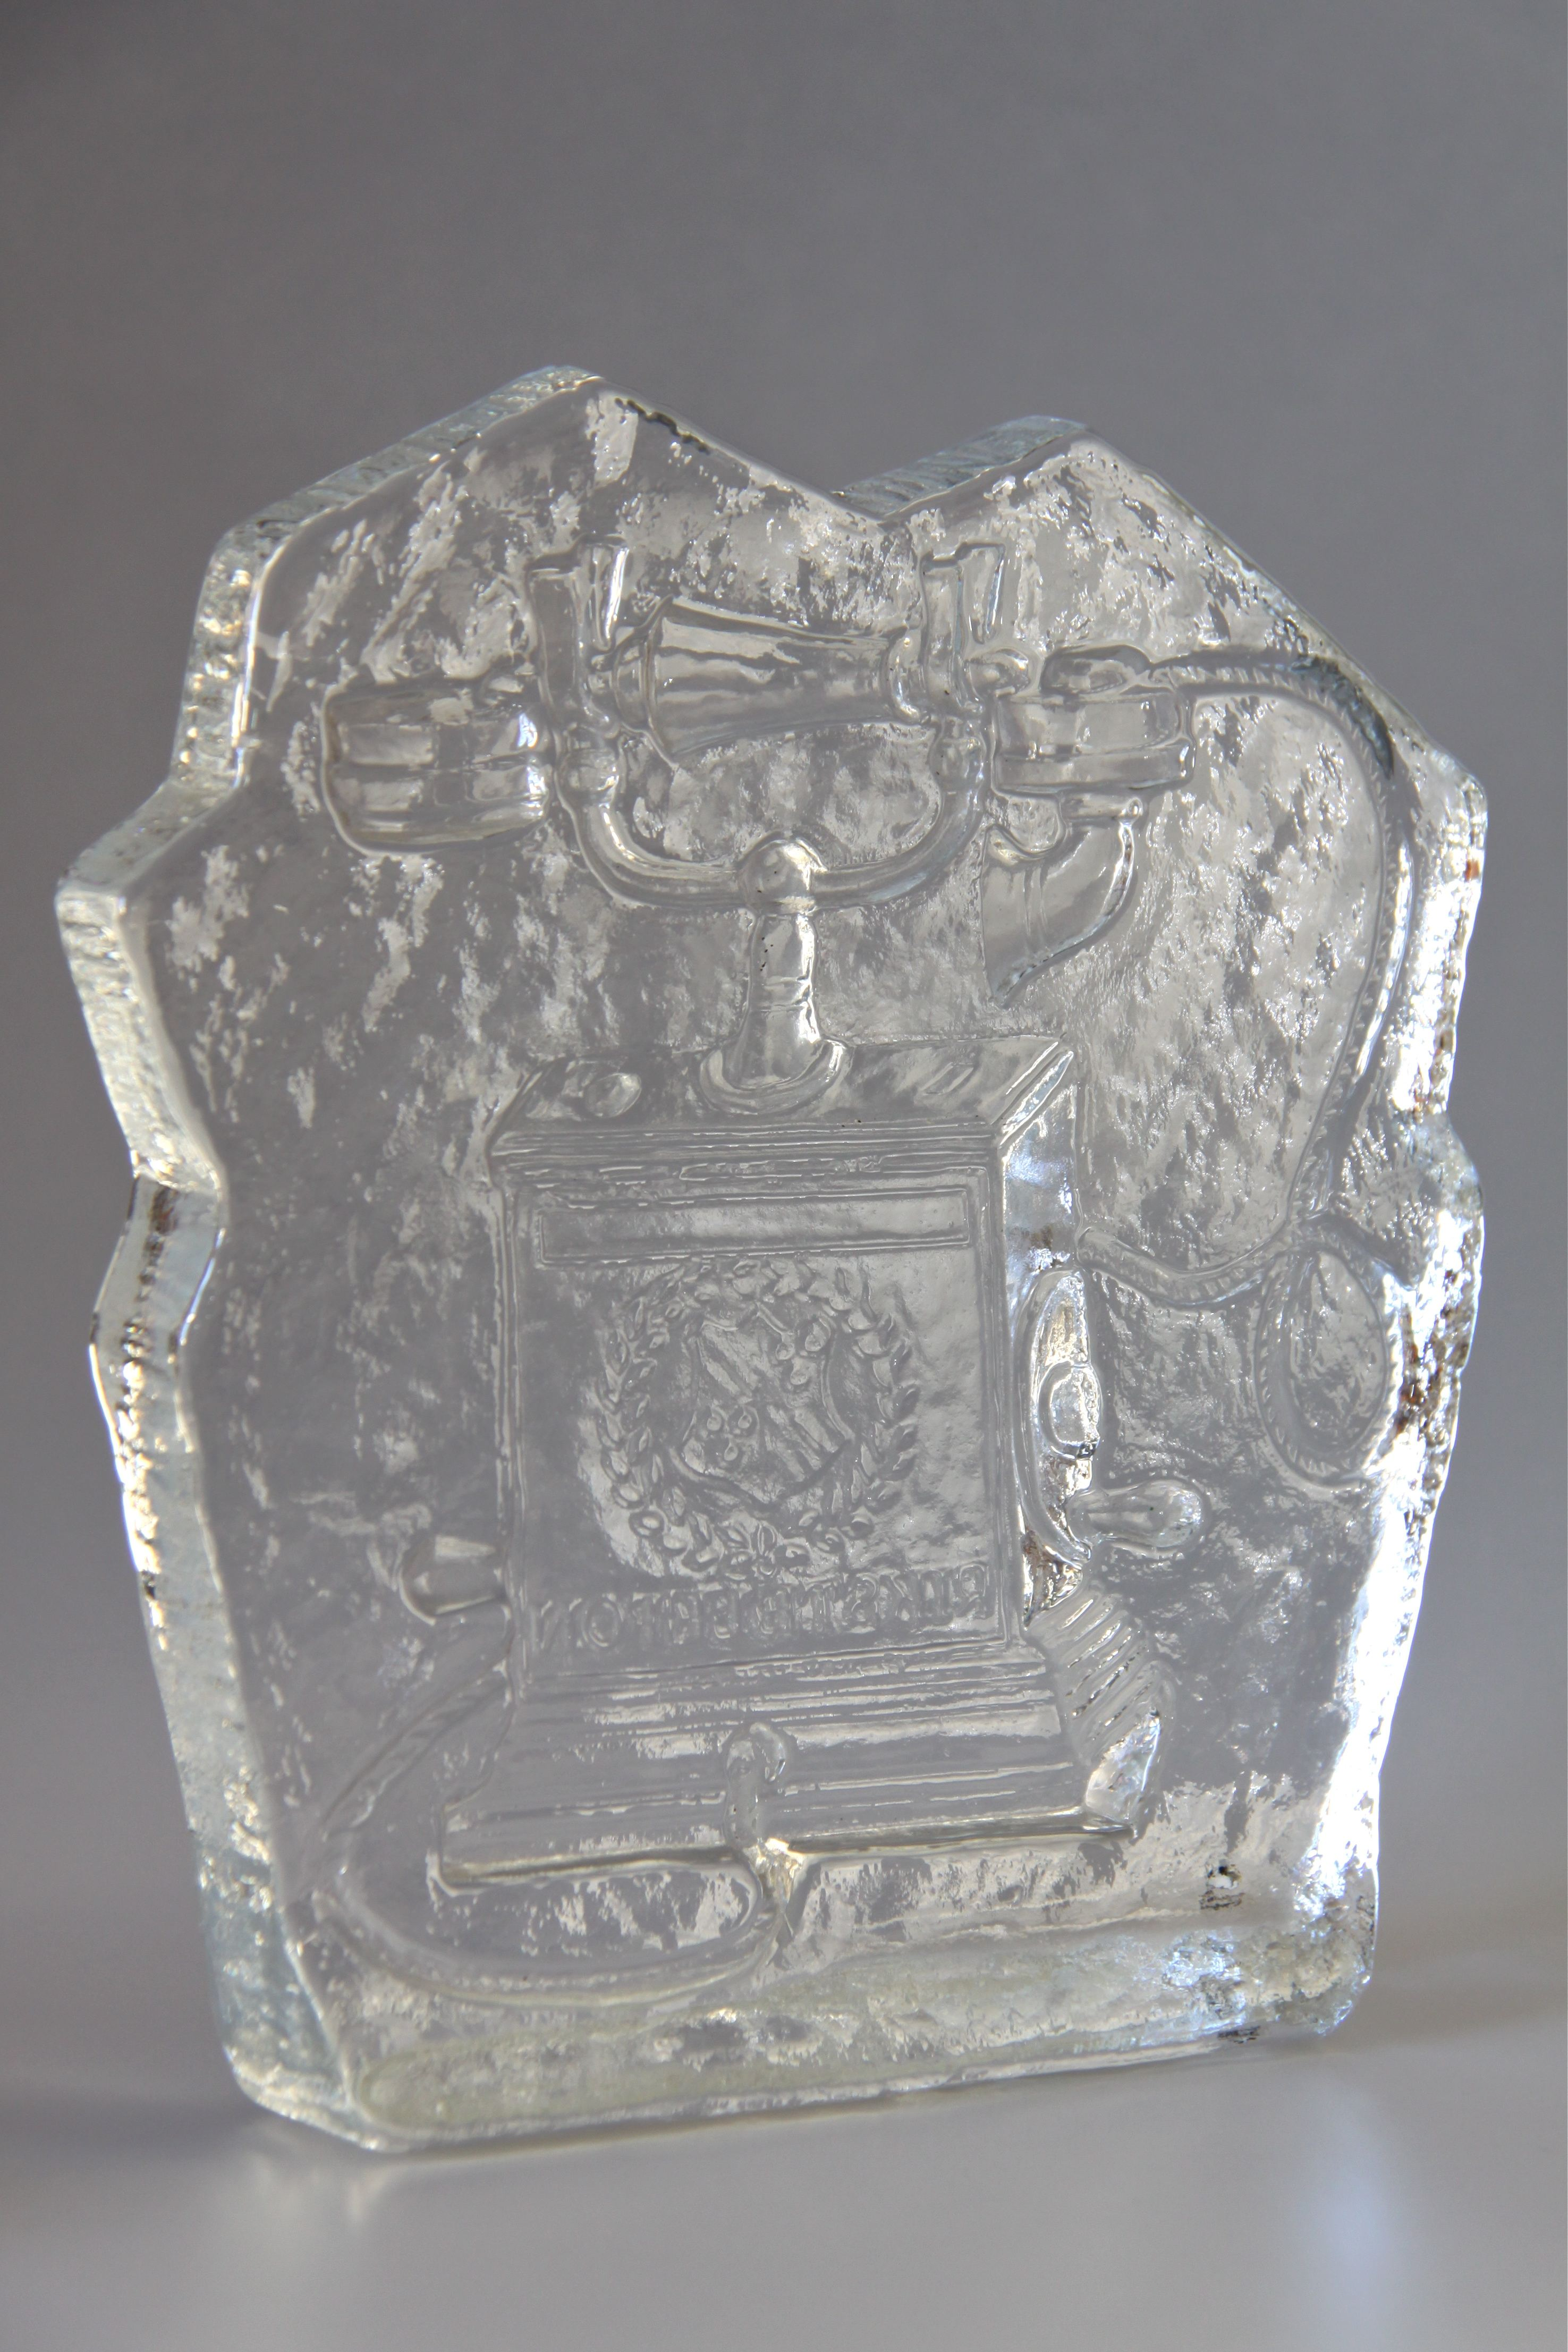 Swedish Pukeberg Glass Paperweight Ice Block Depicting A Vintage Telephone Designed By Uno